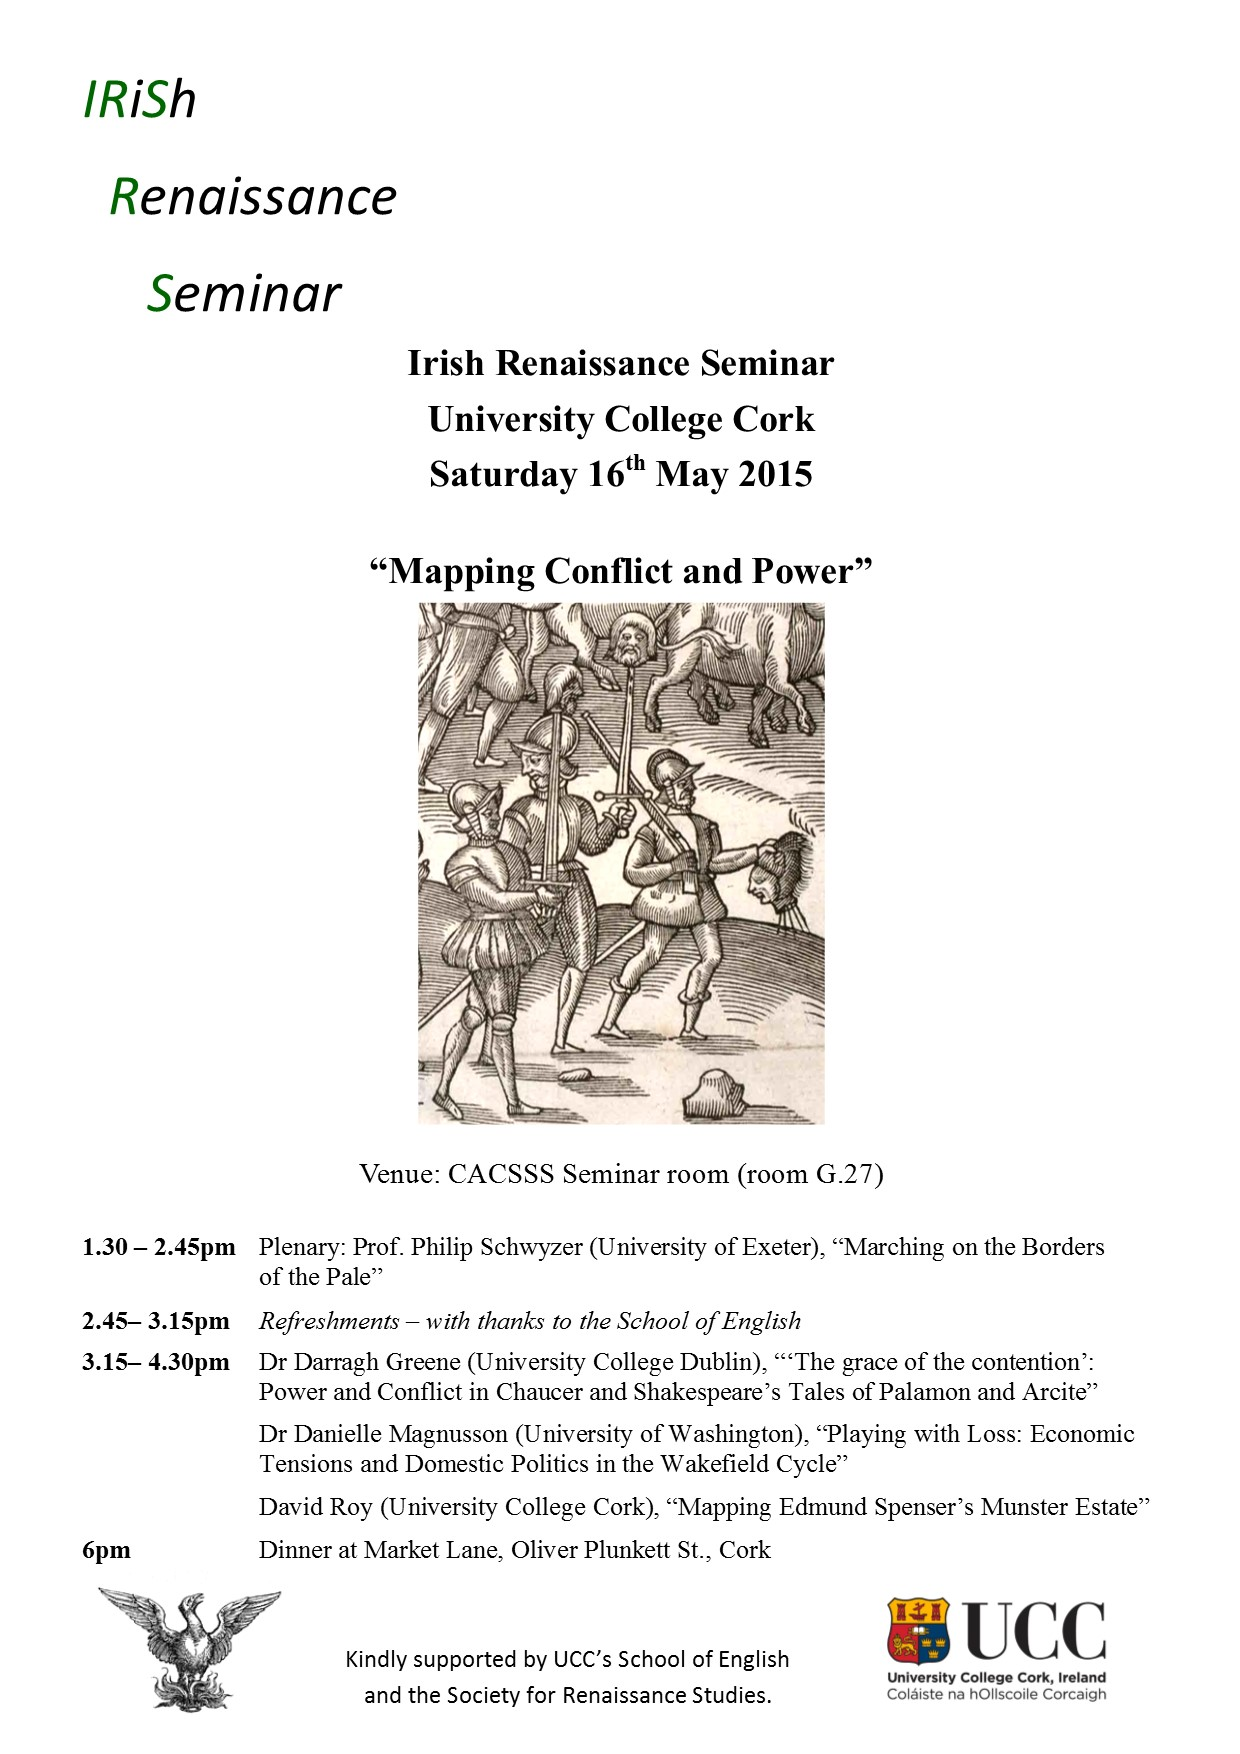 Irish Renaissance Seminar hosted by the School of English